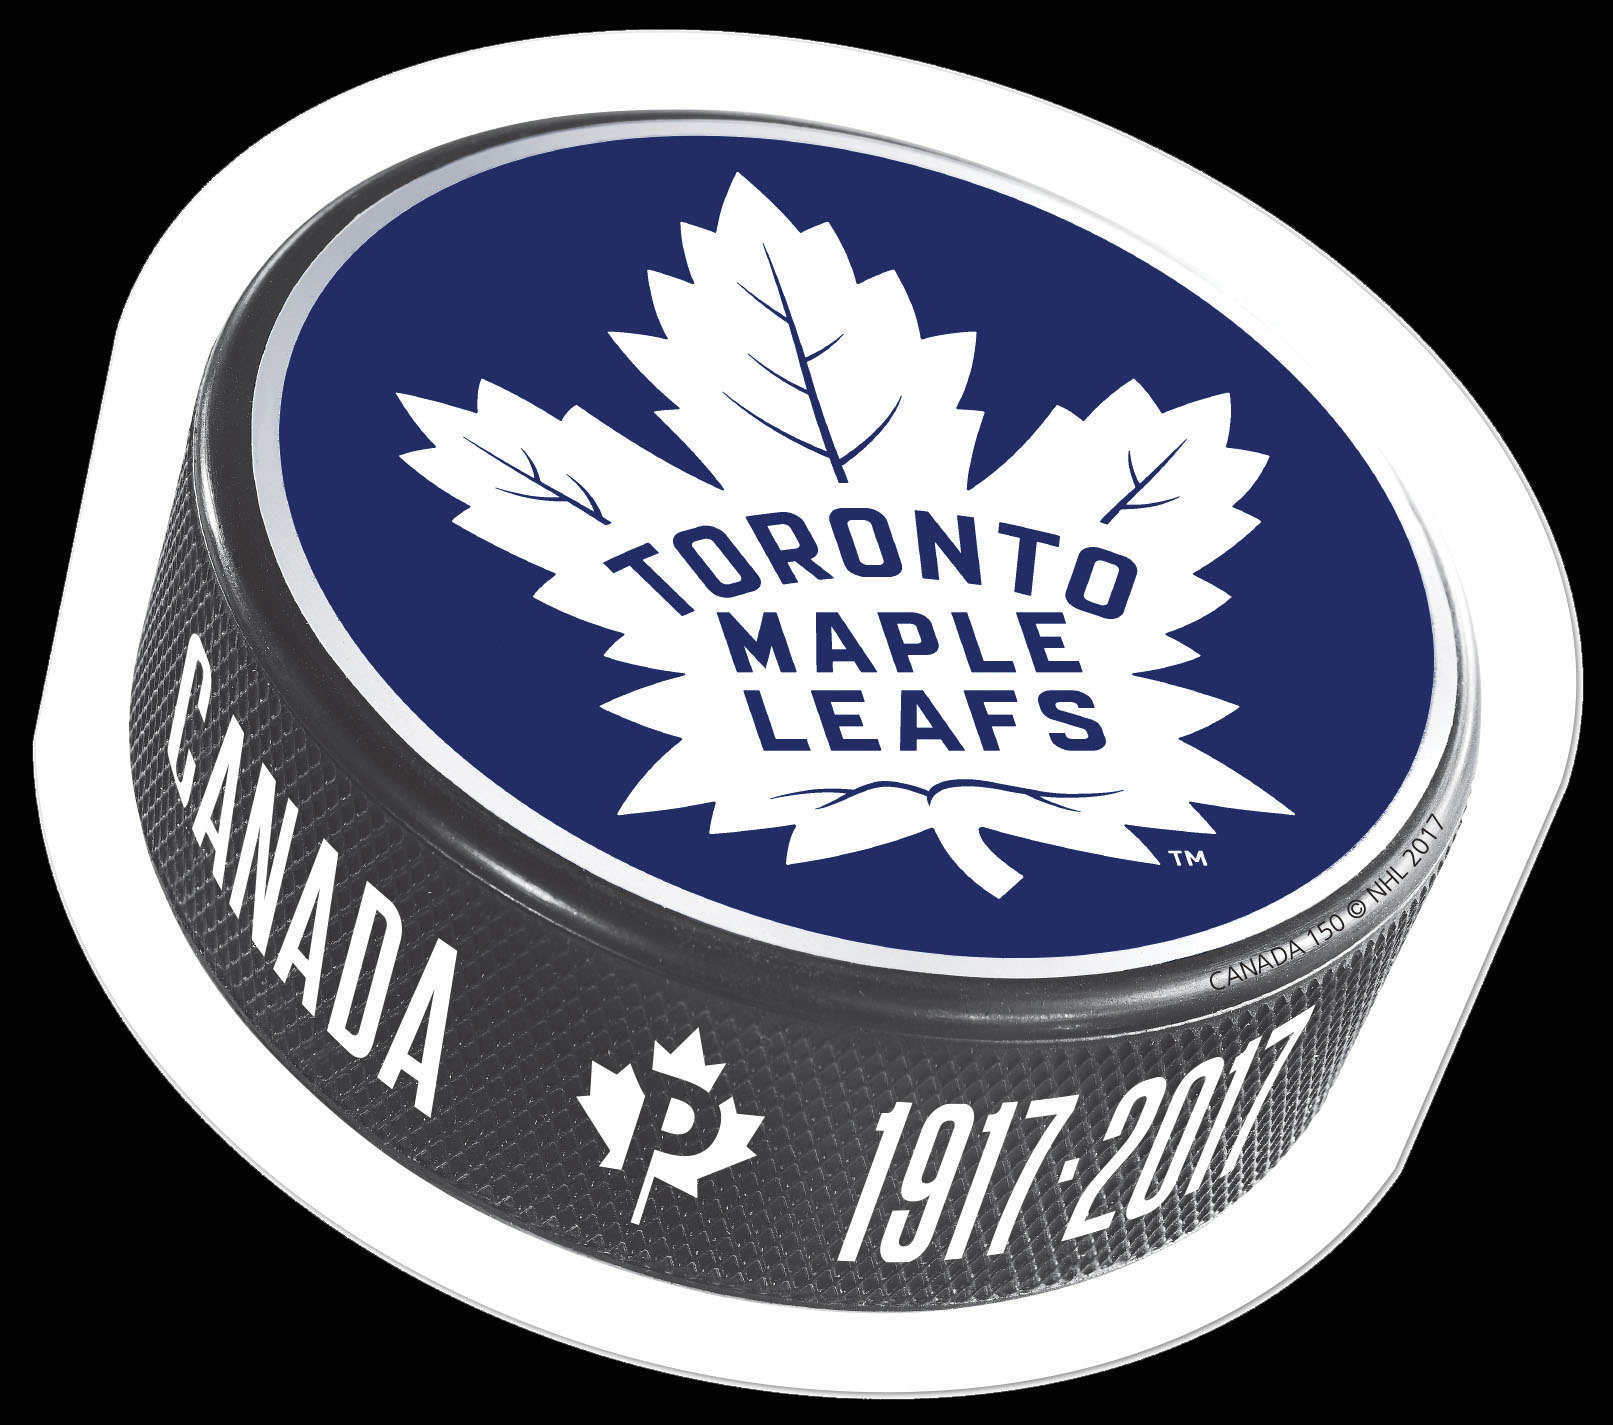 Toronto Maple Leafs 100th Anniversary - Puck Stamp Canada Postage Stamp